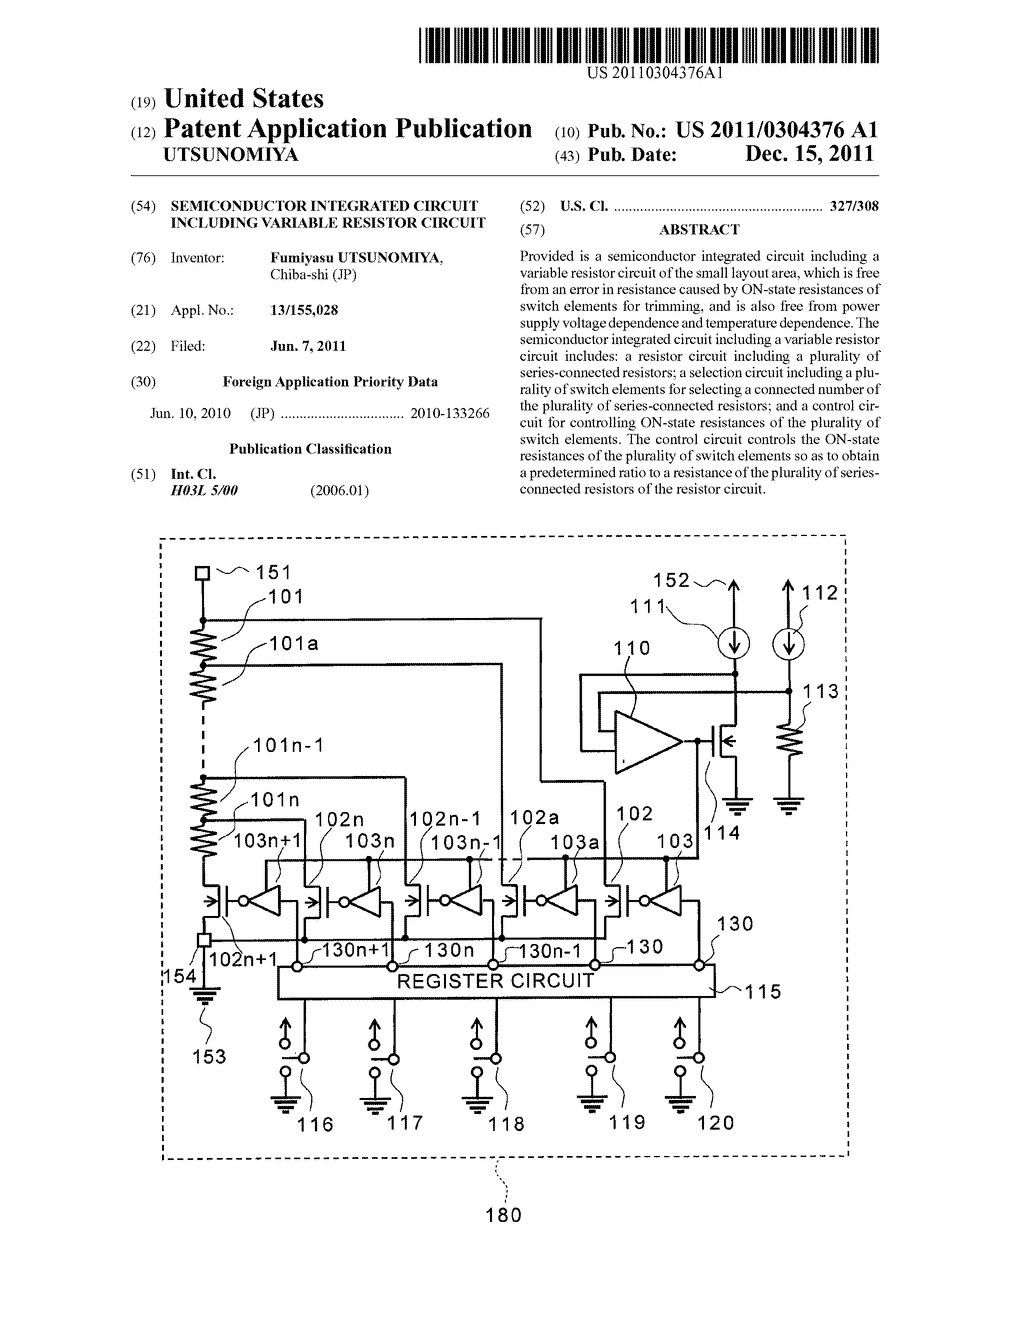 Semiconductor Integrated Circuit Including Variable Resistor Diagram Schematic And Image 01